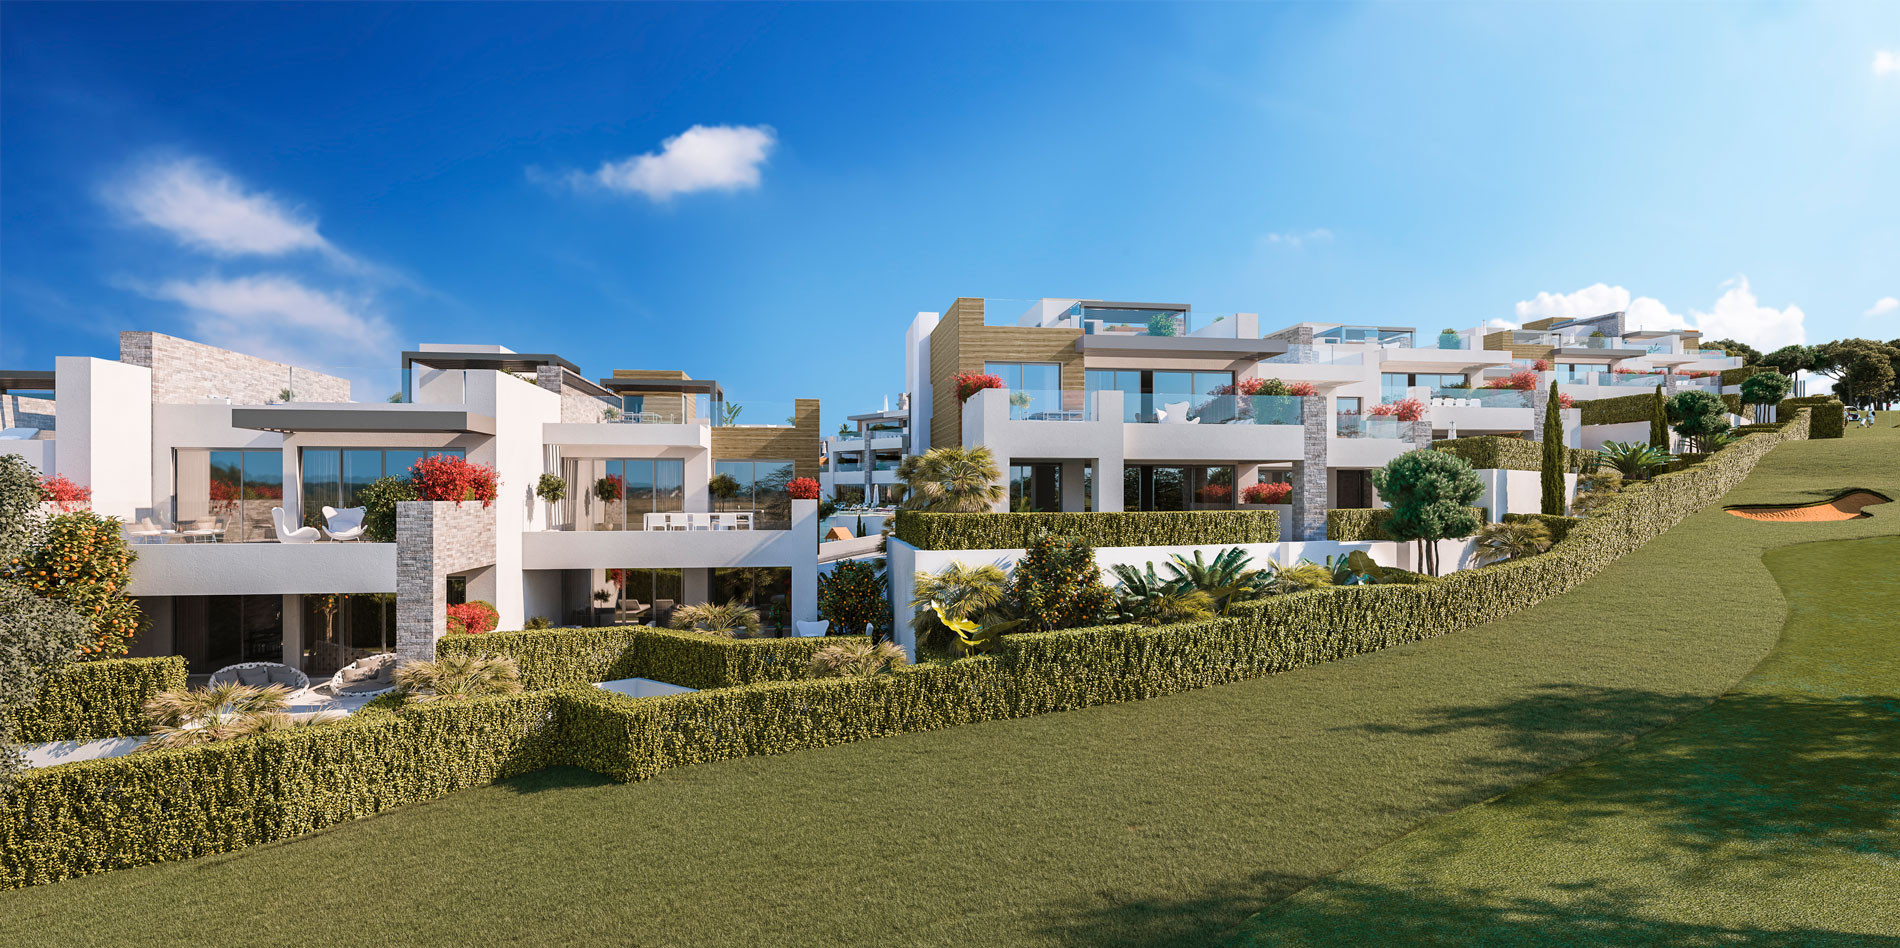 Modern contemporary front line golf apartments for sale in Cabopino – Marbella